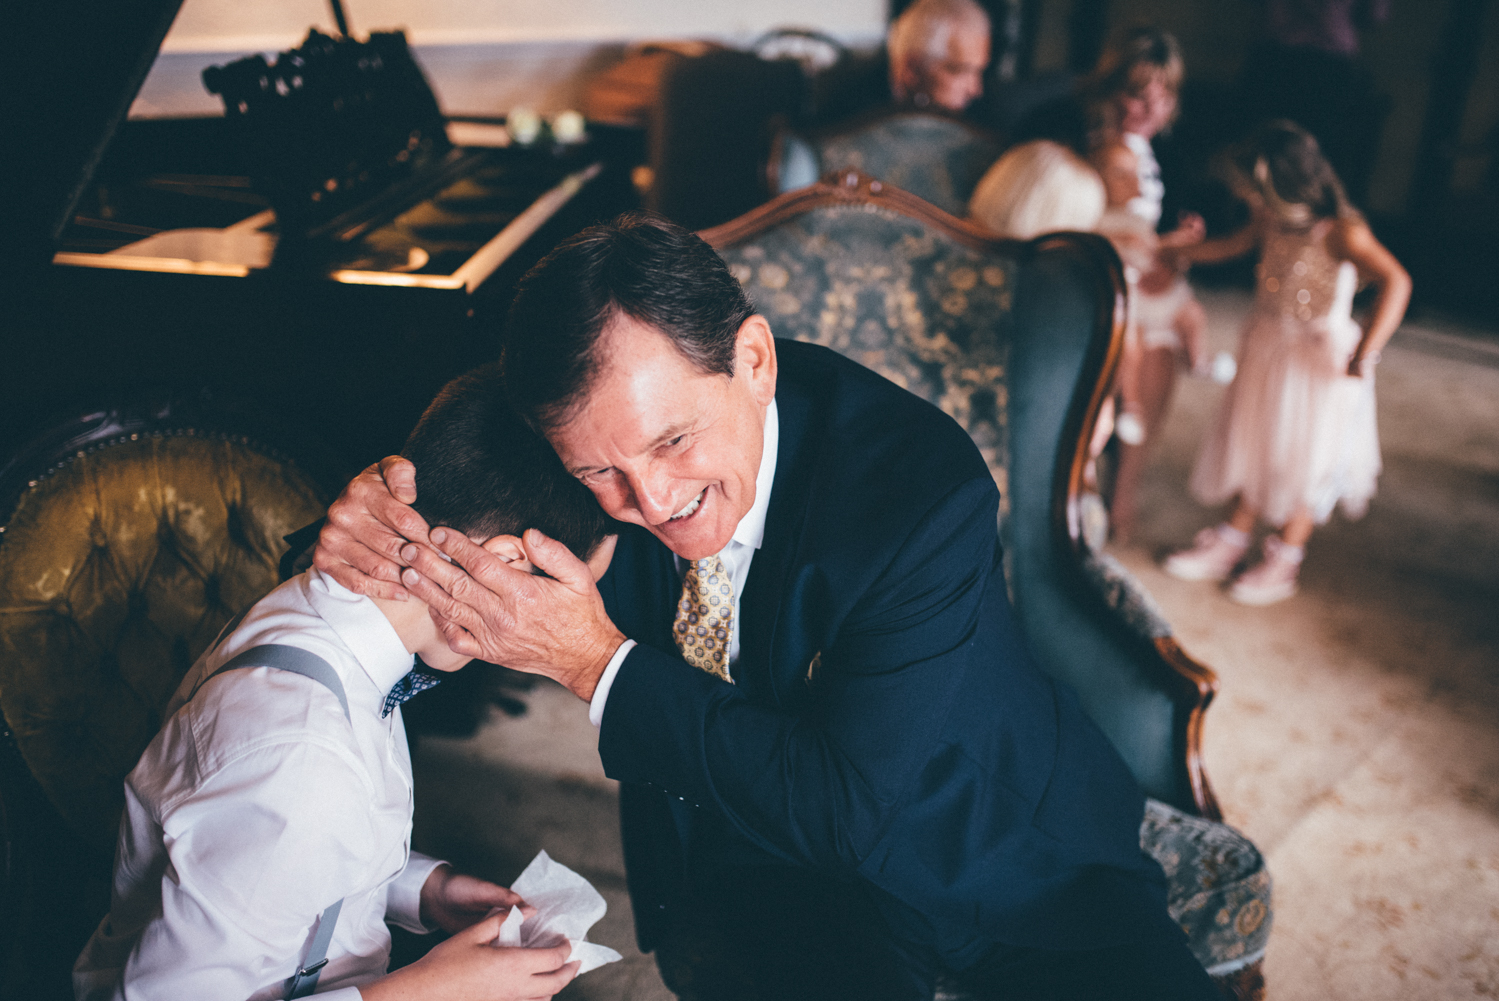 The Bride's son gets hugged by his grandad whilst crying with happiness about the wedding at Langdale Chase Hotel in the Lake District.